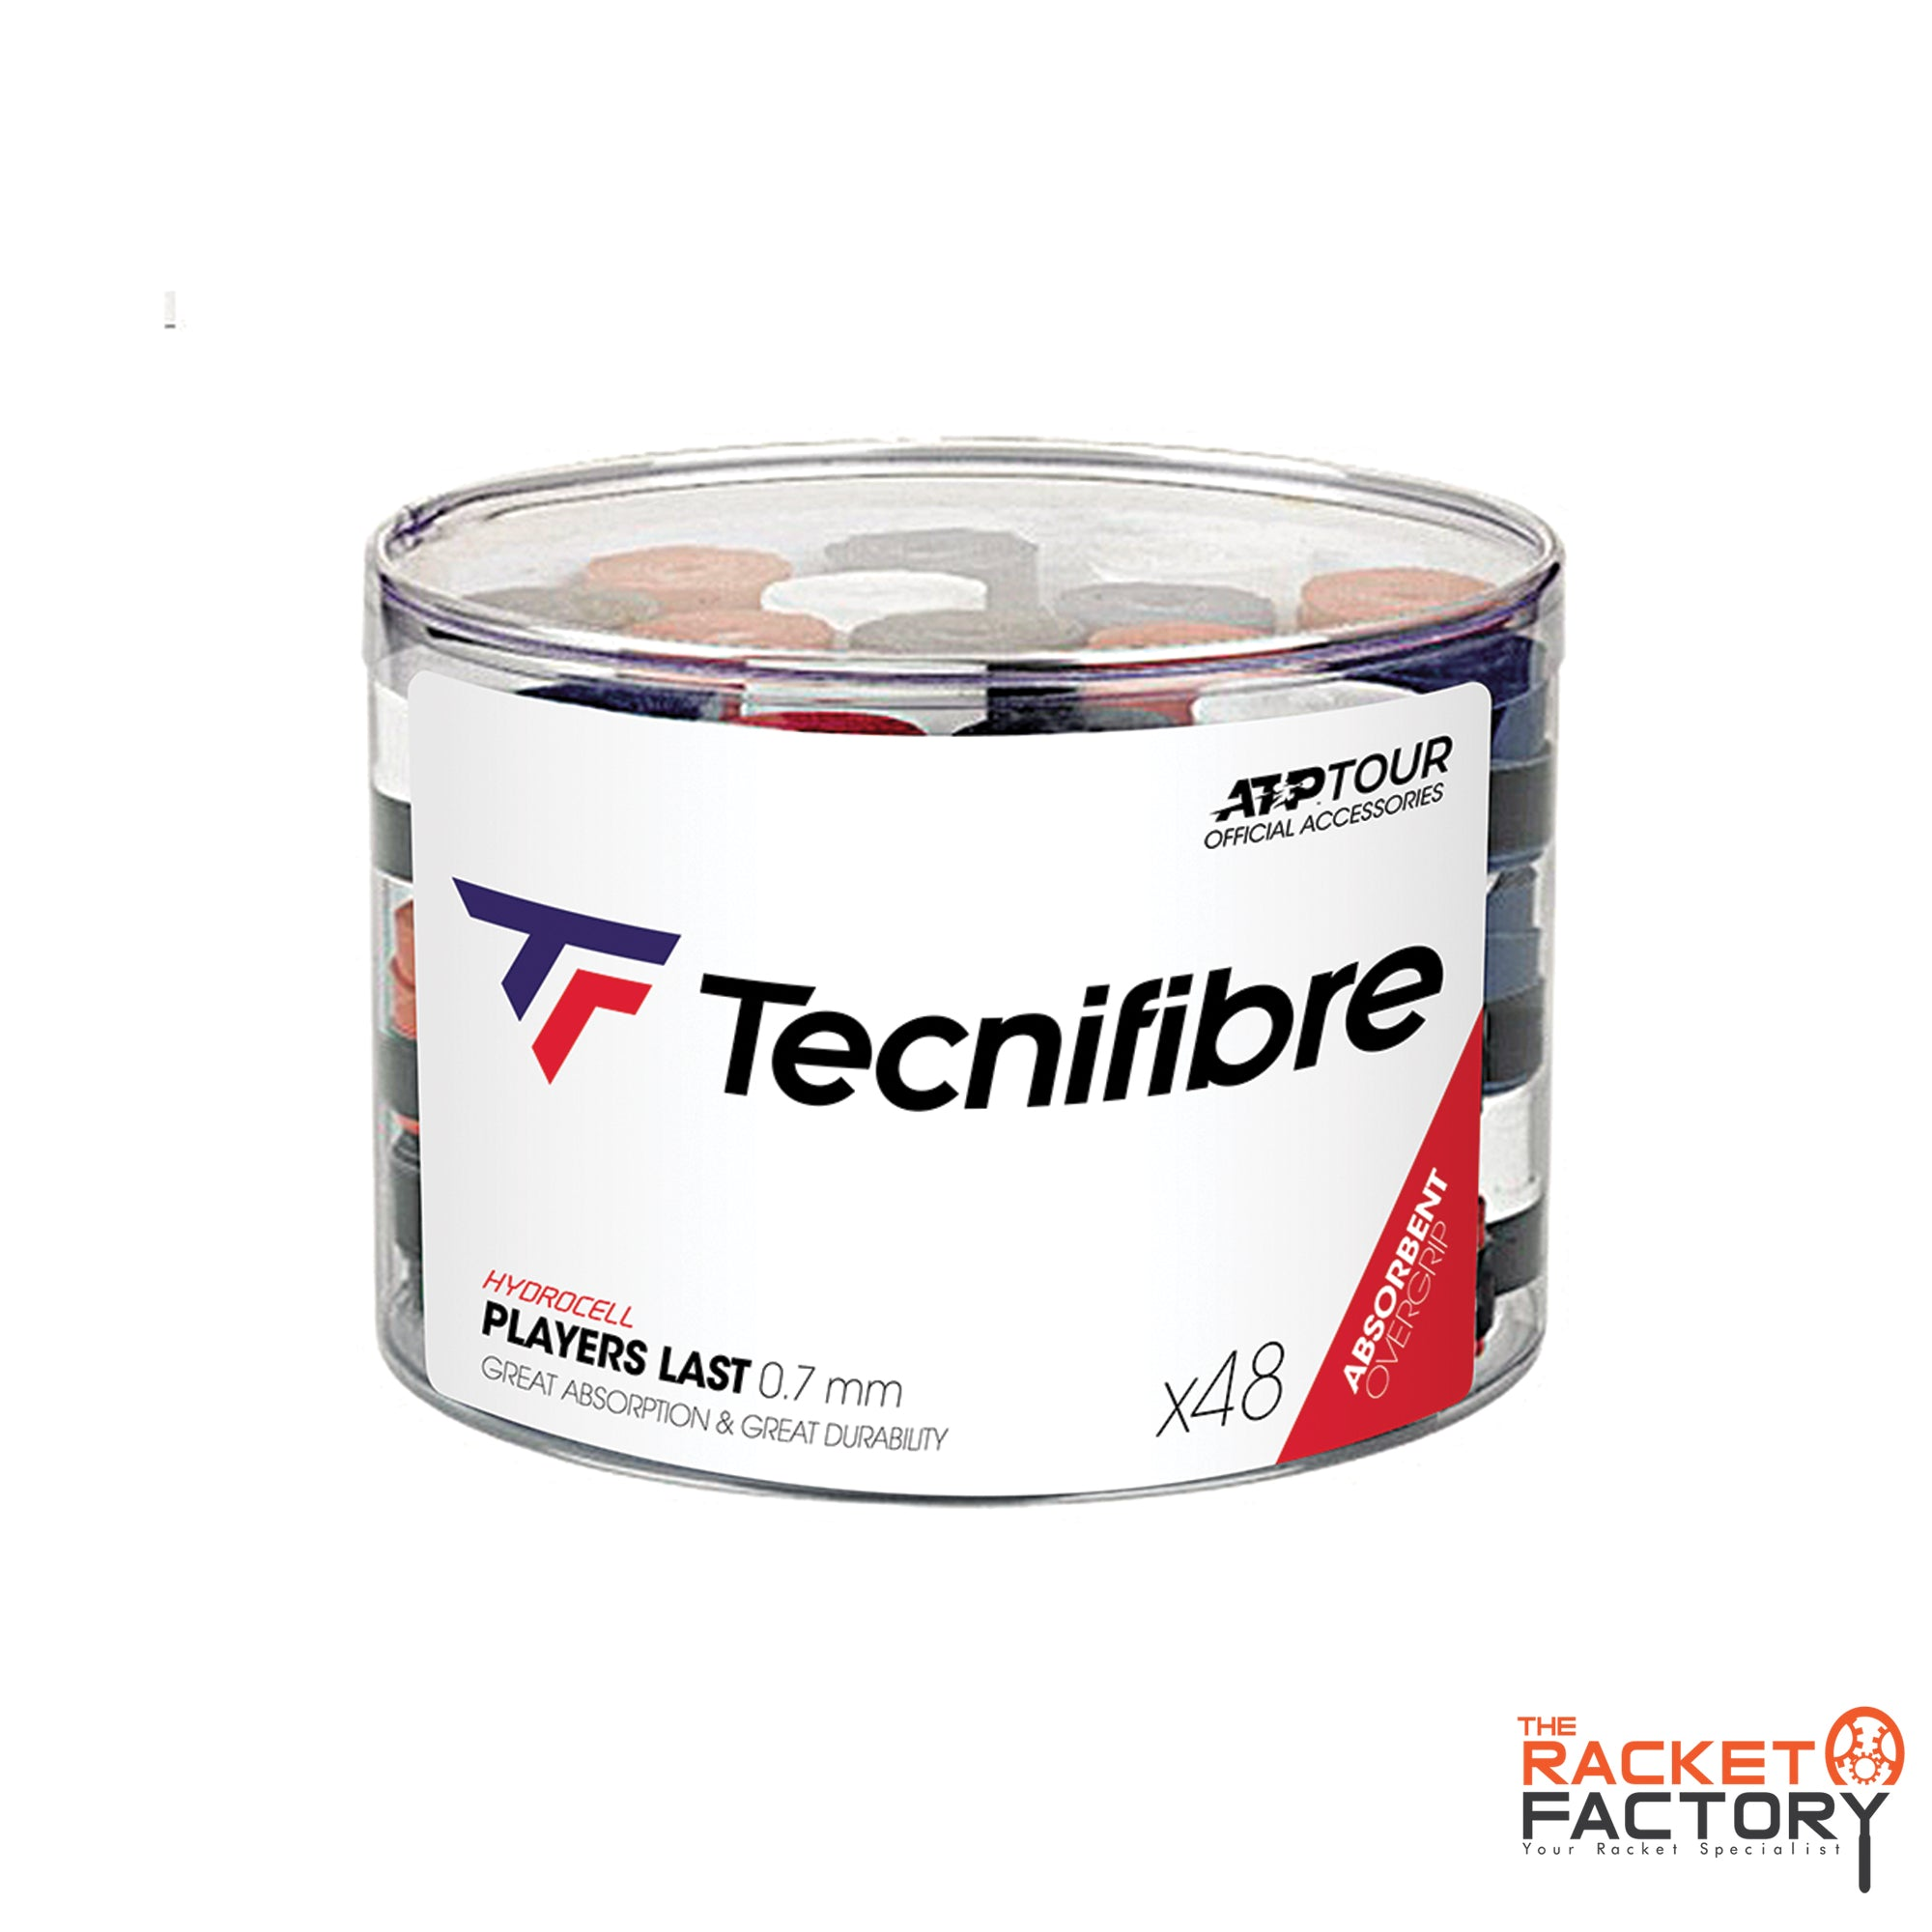 Tecnifibre ATP Players Last Over Grip - Box of 48